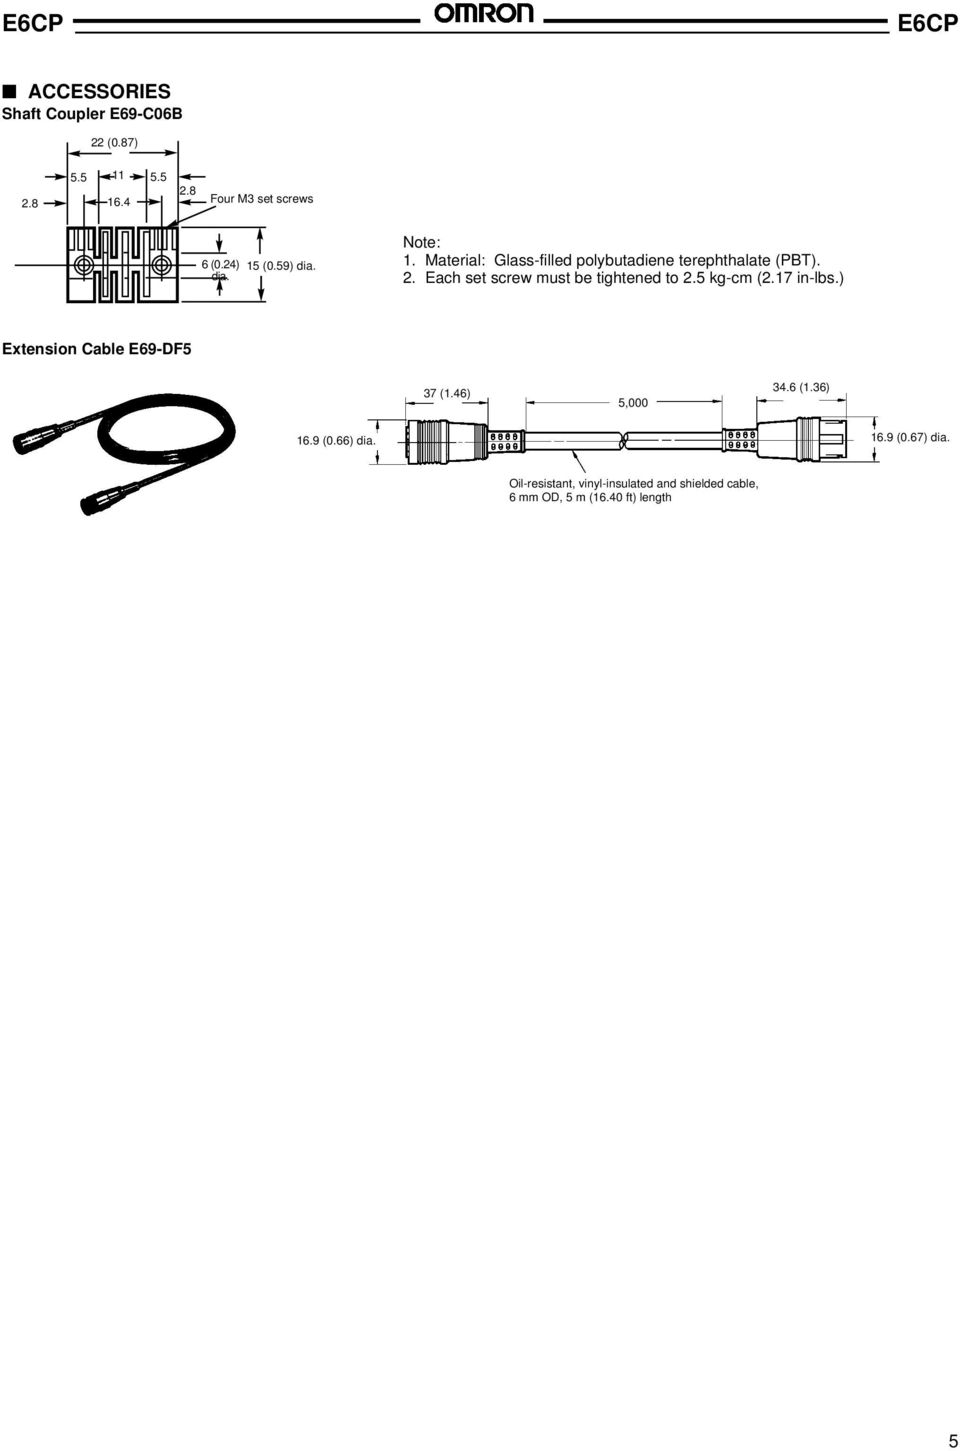 Each set screw must be tightened to 2.5 kg-cm (2.17 in-lbs.) Extension Cable E69-DF5 37 (1.